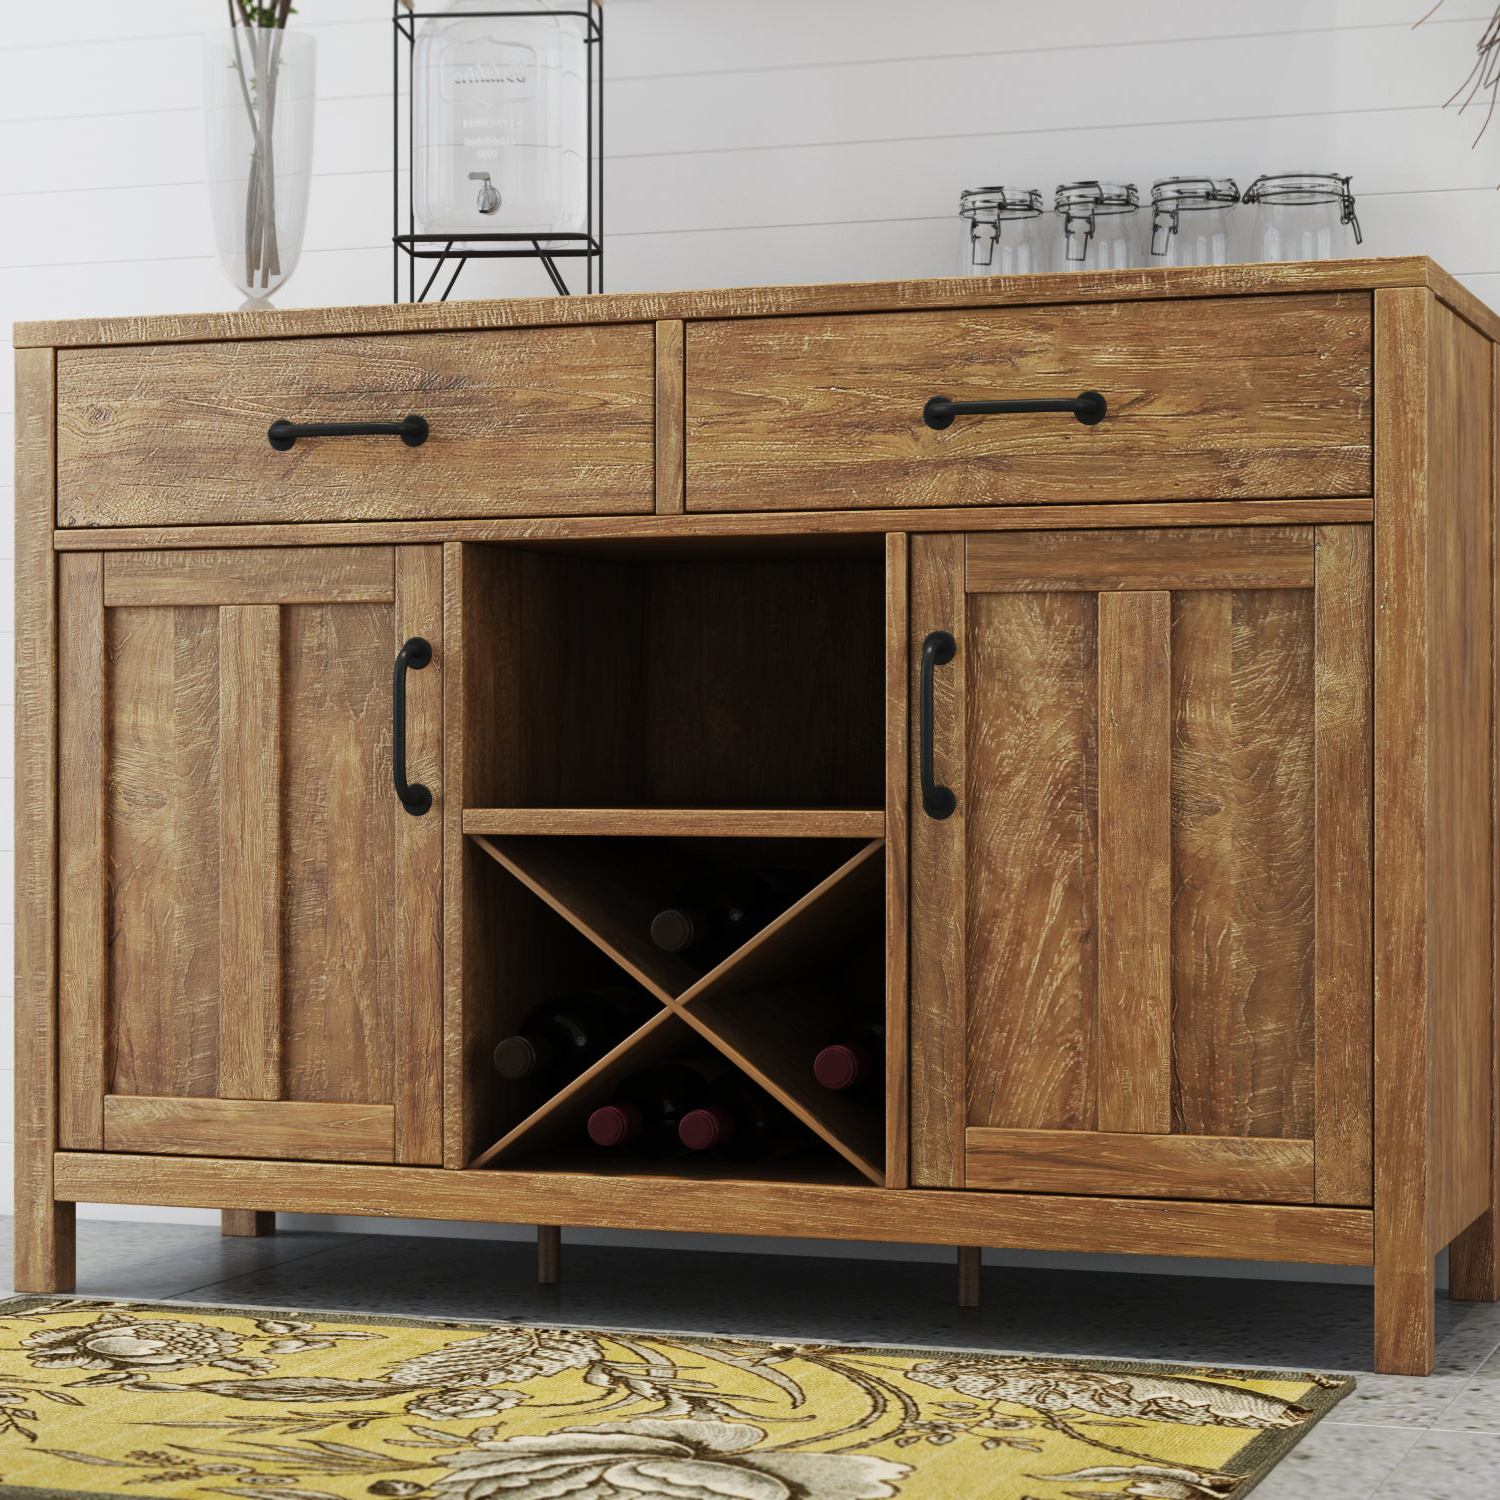 Sideboards & Credenzas You'll Love In 2019 | Wayfair Inside Emmaline Sideboards (View 20 of 20)